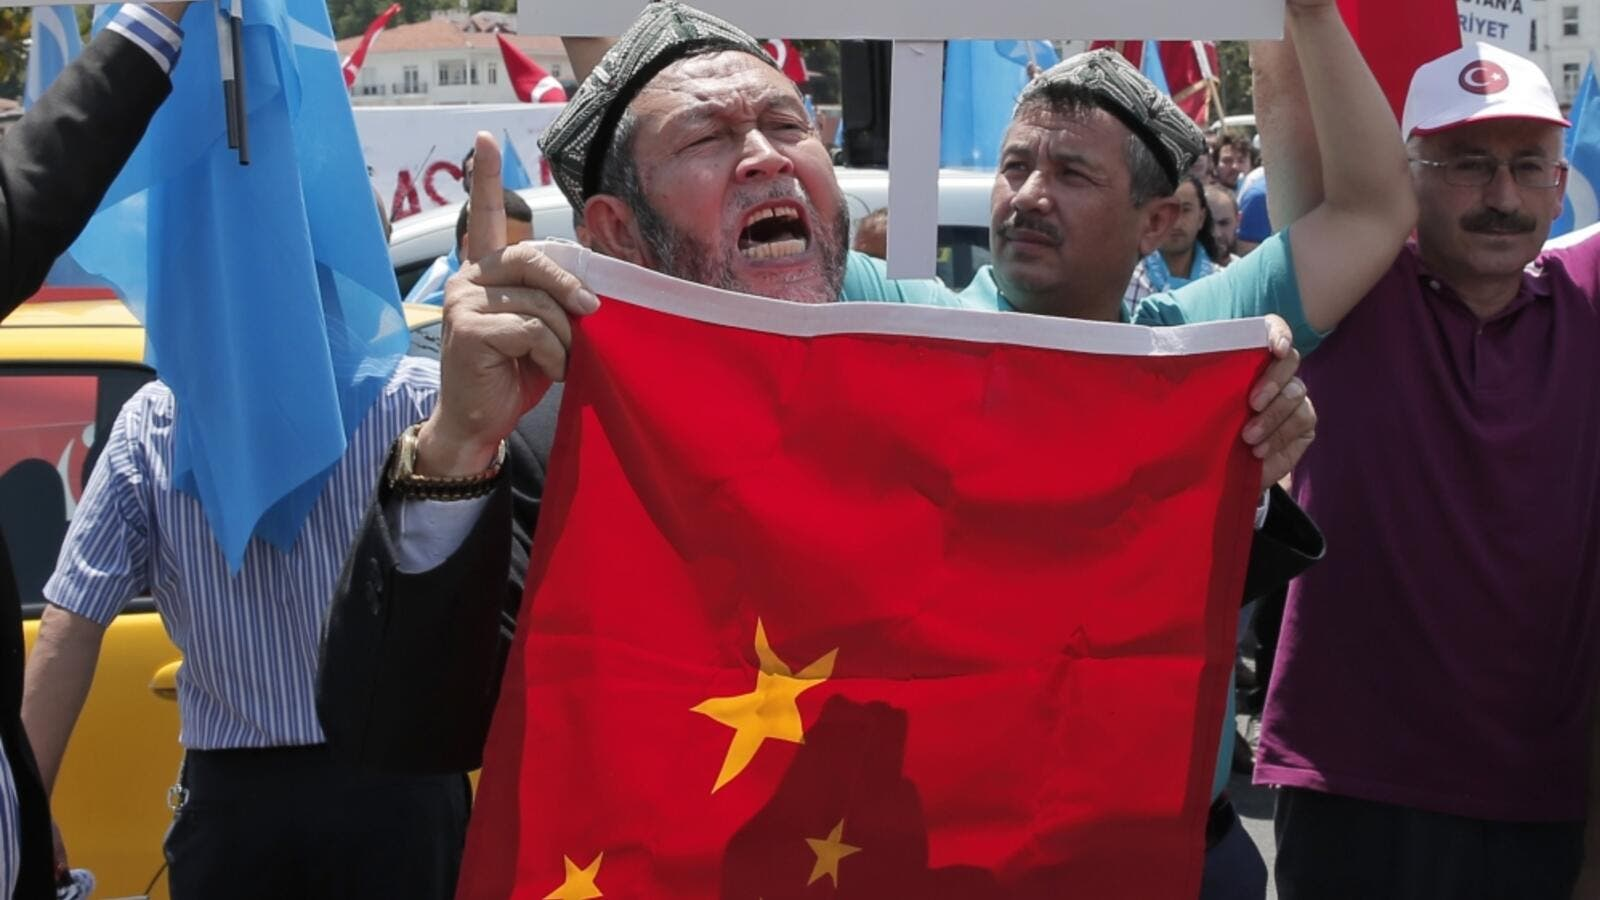 Hundreds of protesters marched in Istanbul chanting anti-China slogans outside the Chinese consulate in 2015. (FilePhoto/AFP)